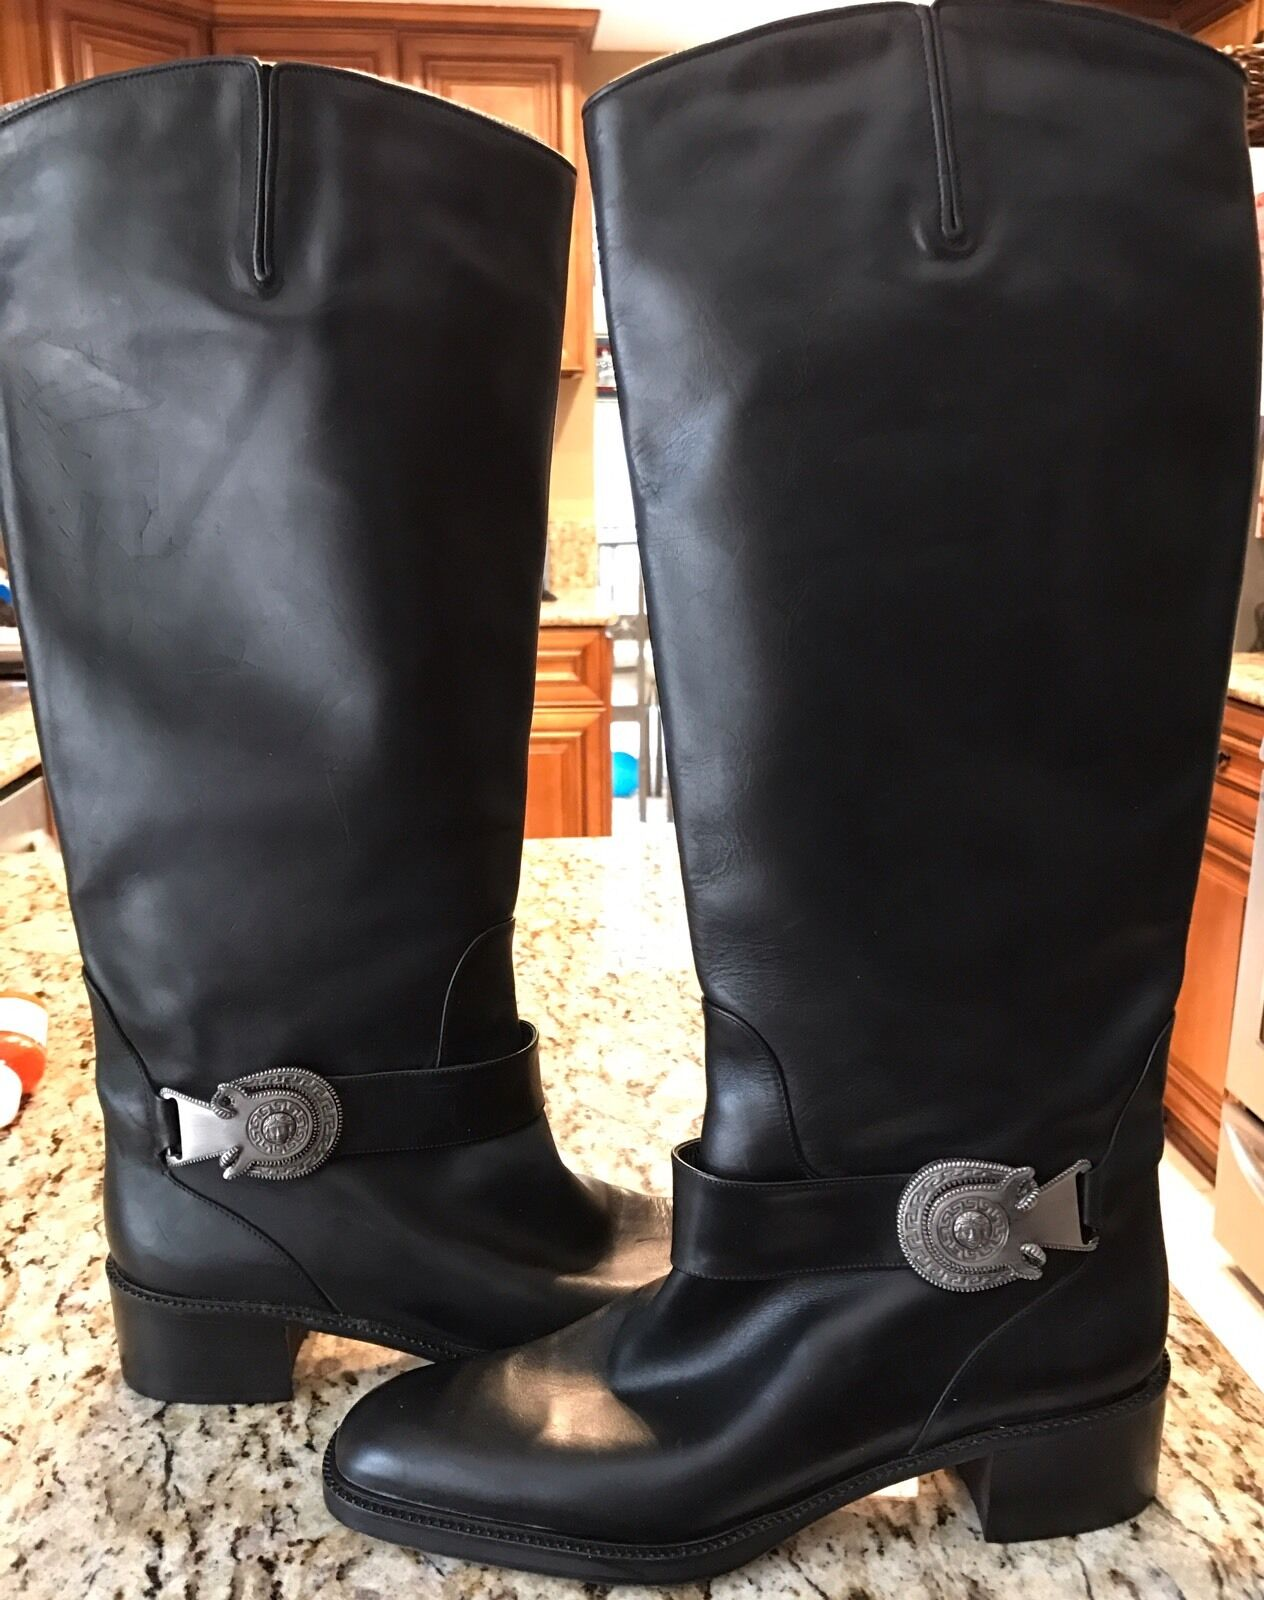 VIA SPIGA Black Black Black Leather Pull On High- Knee Boots 9 AA - Very Good Cond 68b09b